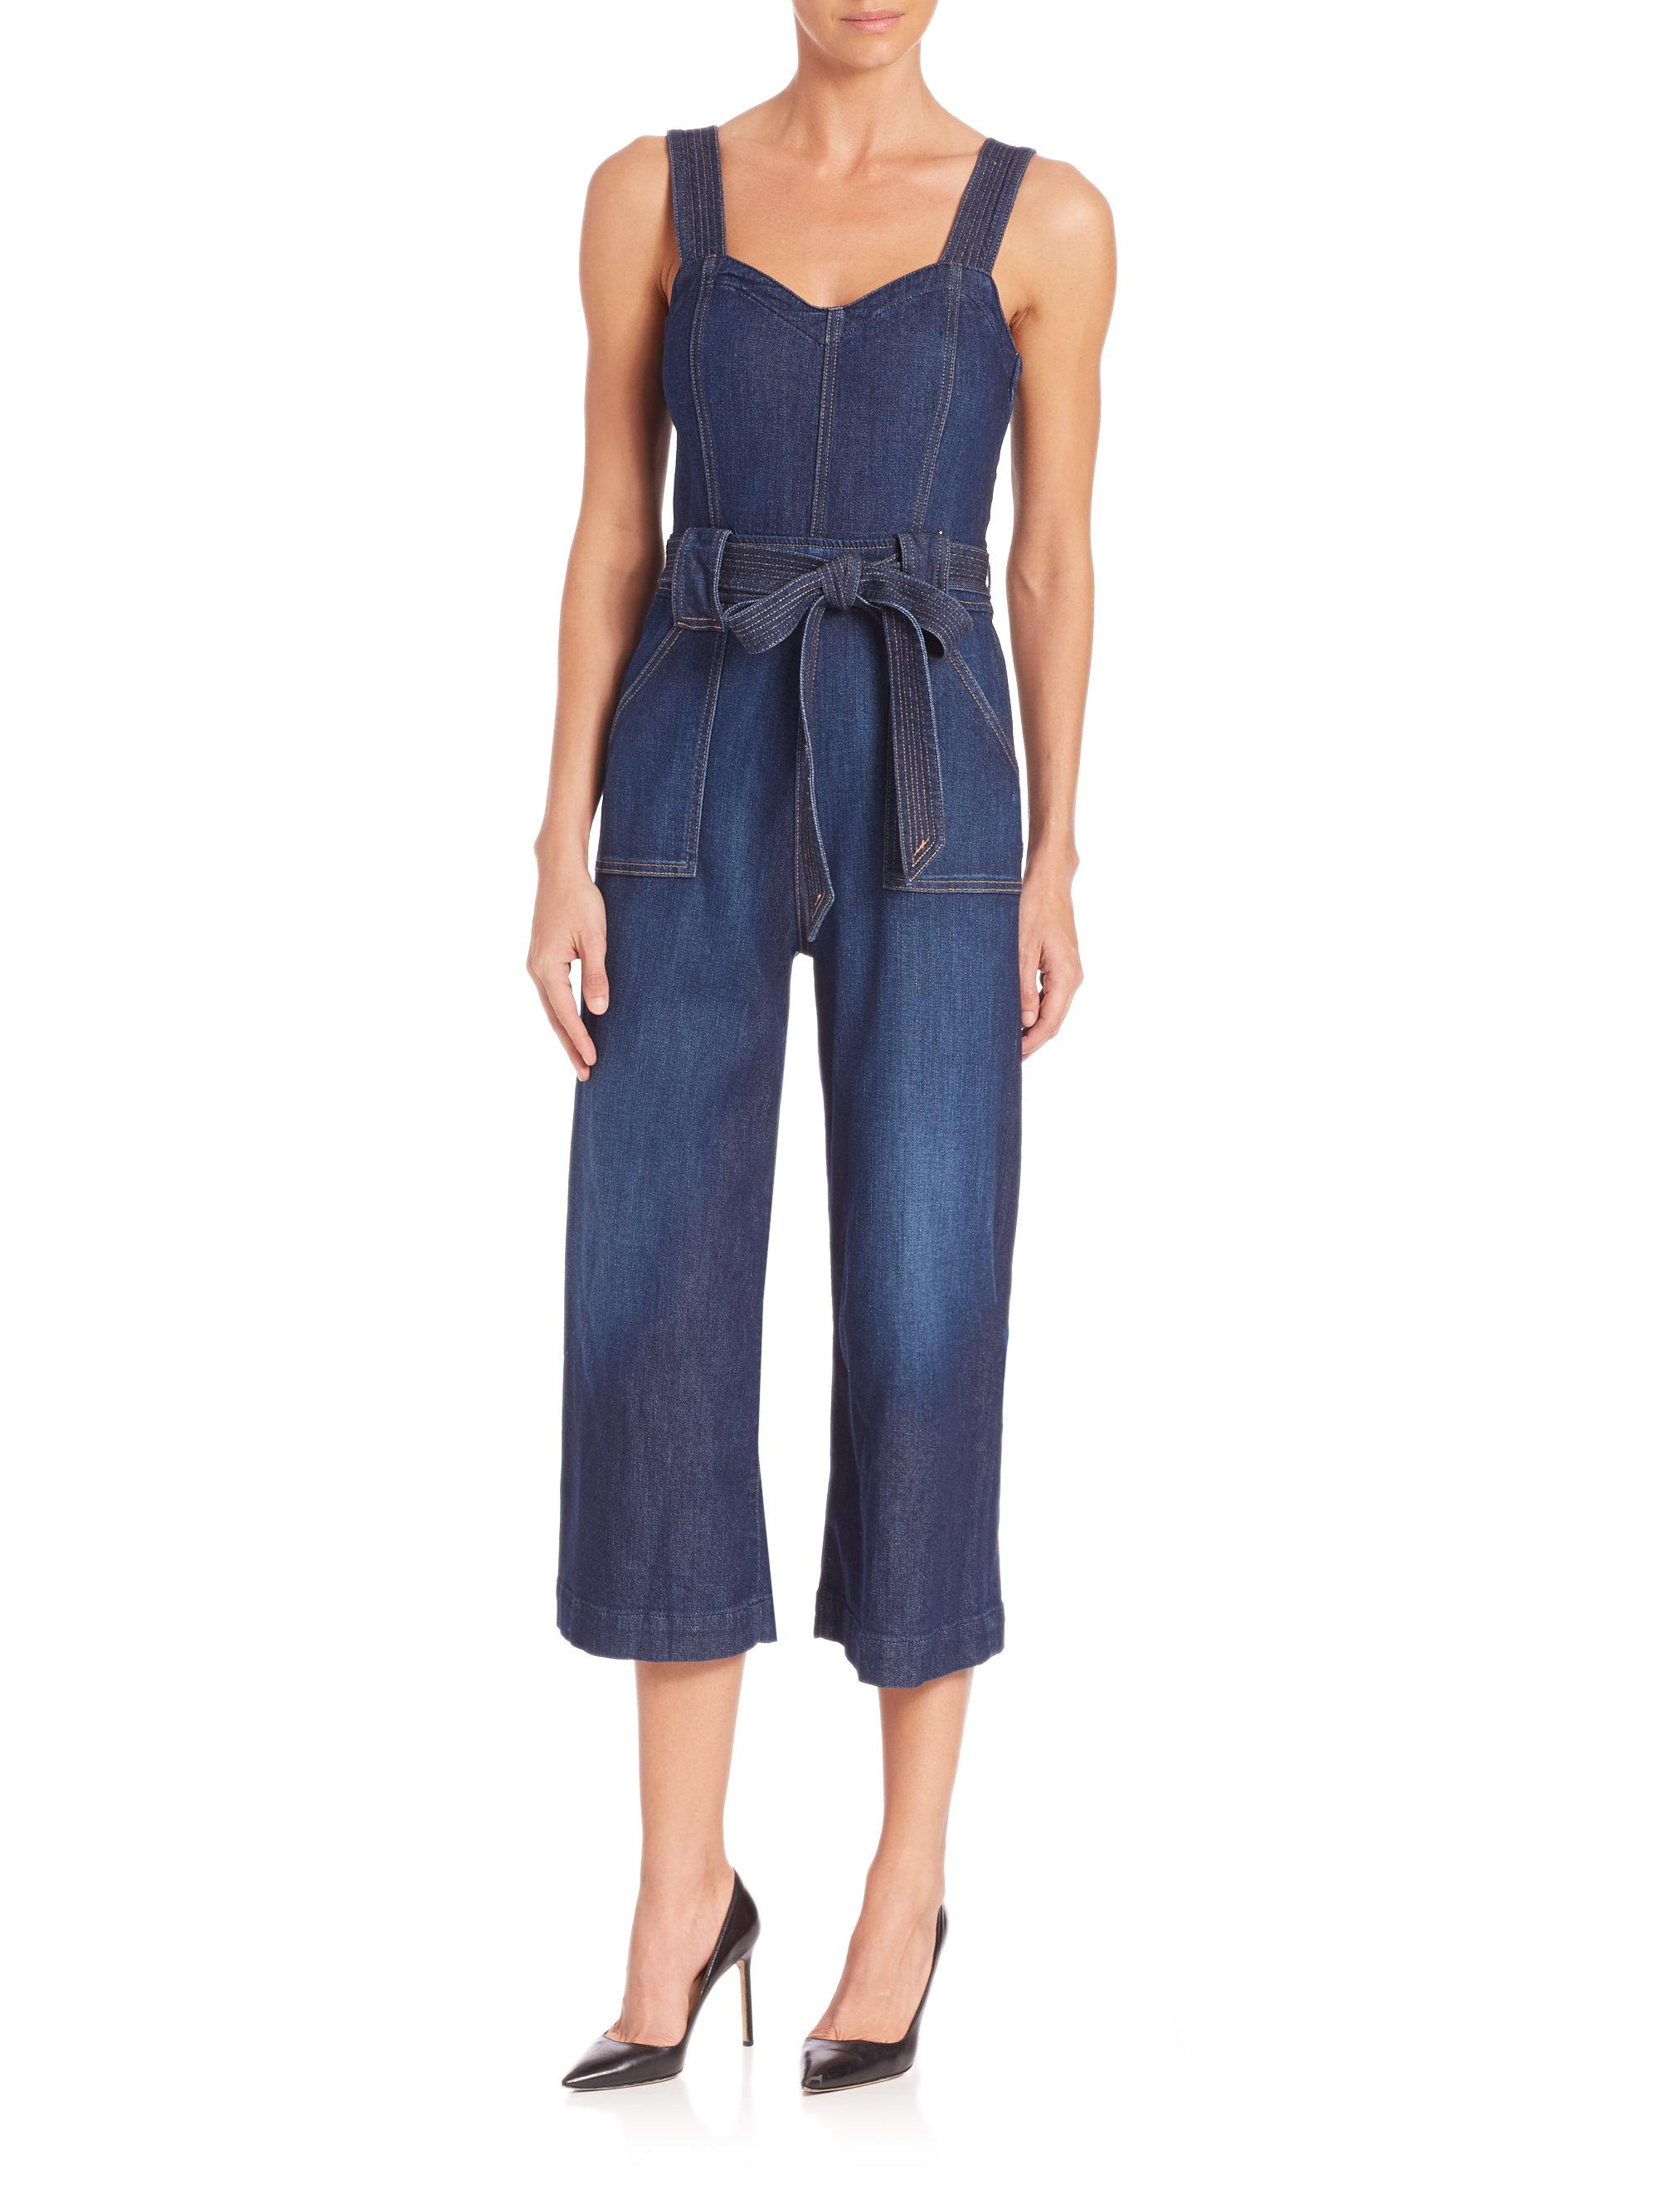 DUNGAREES - Jumpsuits 7 For All Mankind Quality From China Wholesale For Sale Online Store RqkMrc